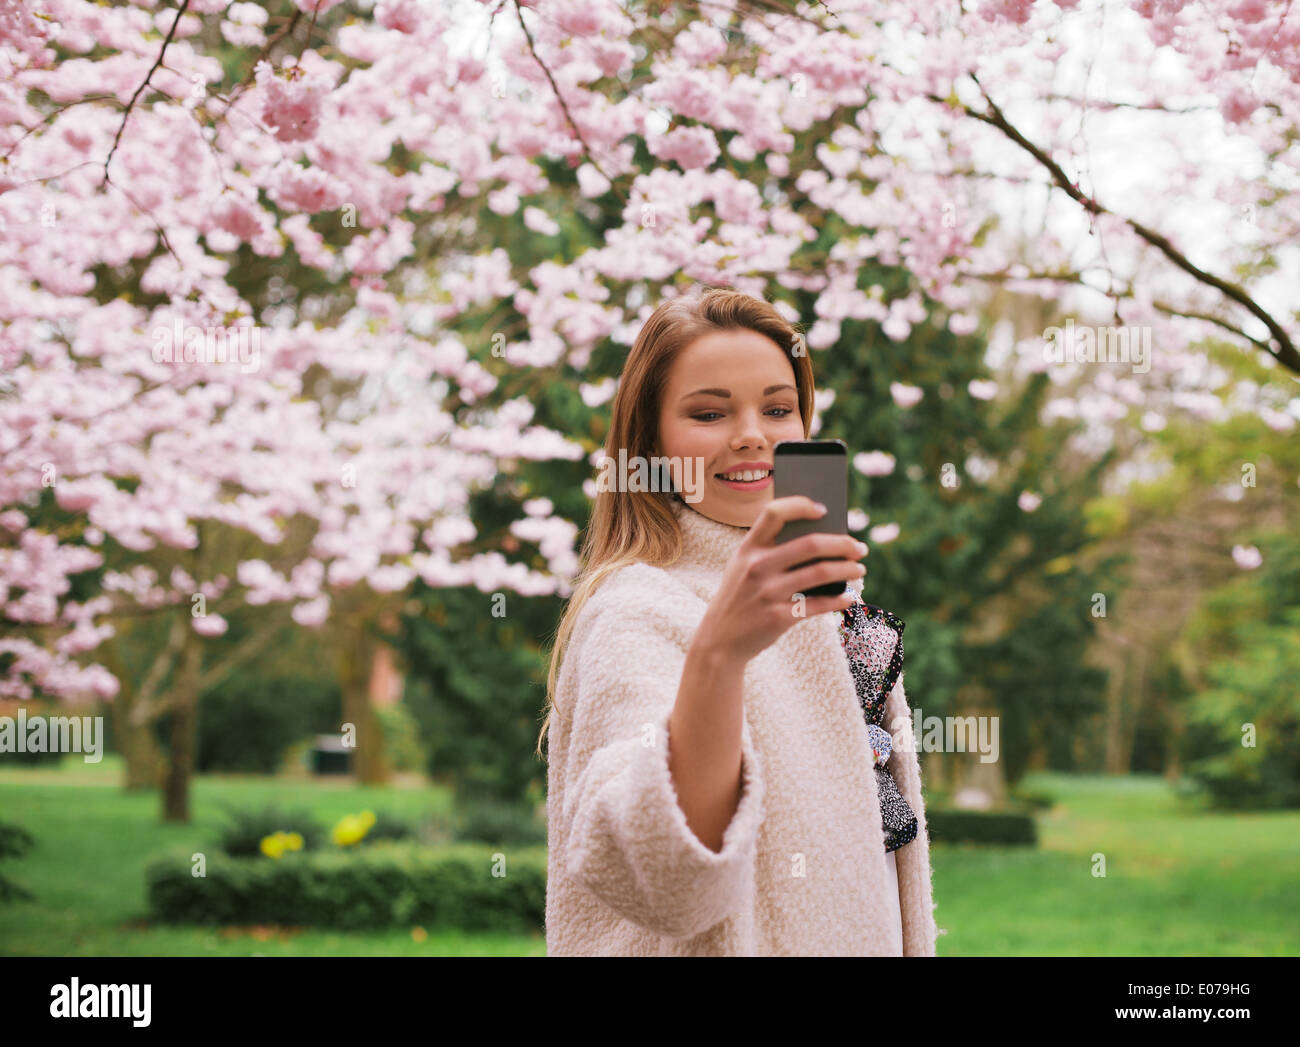 Beautiful young female taking pictures of with smartphone at spring blossom park. Caucasian female shooting at park with phone. - Stock Image